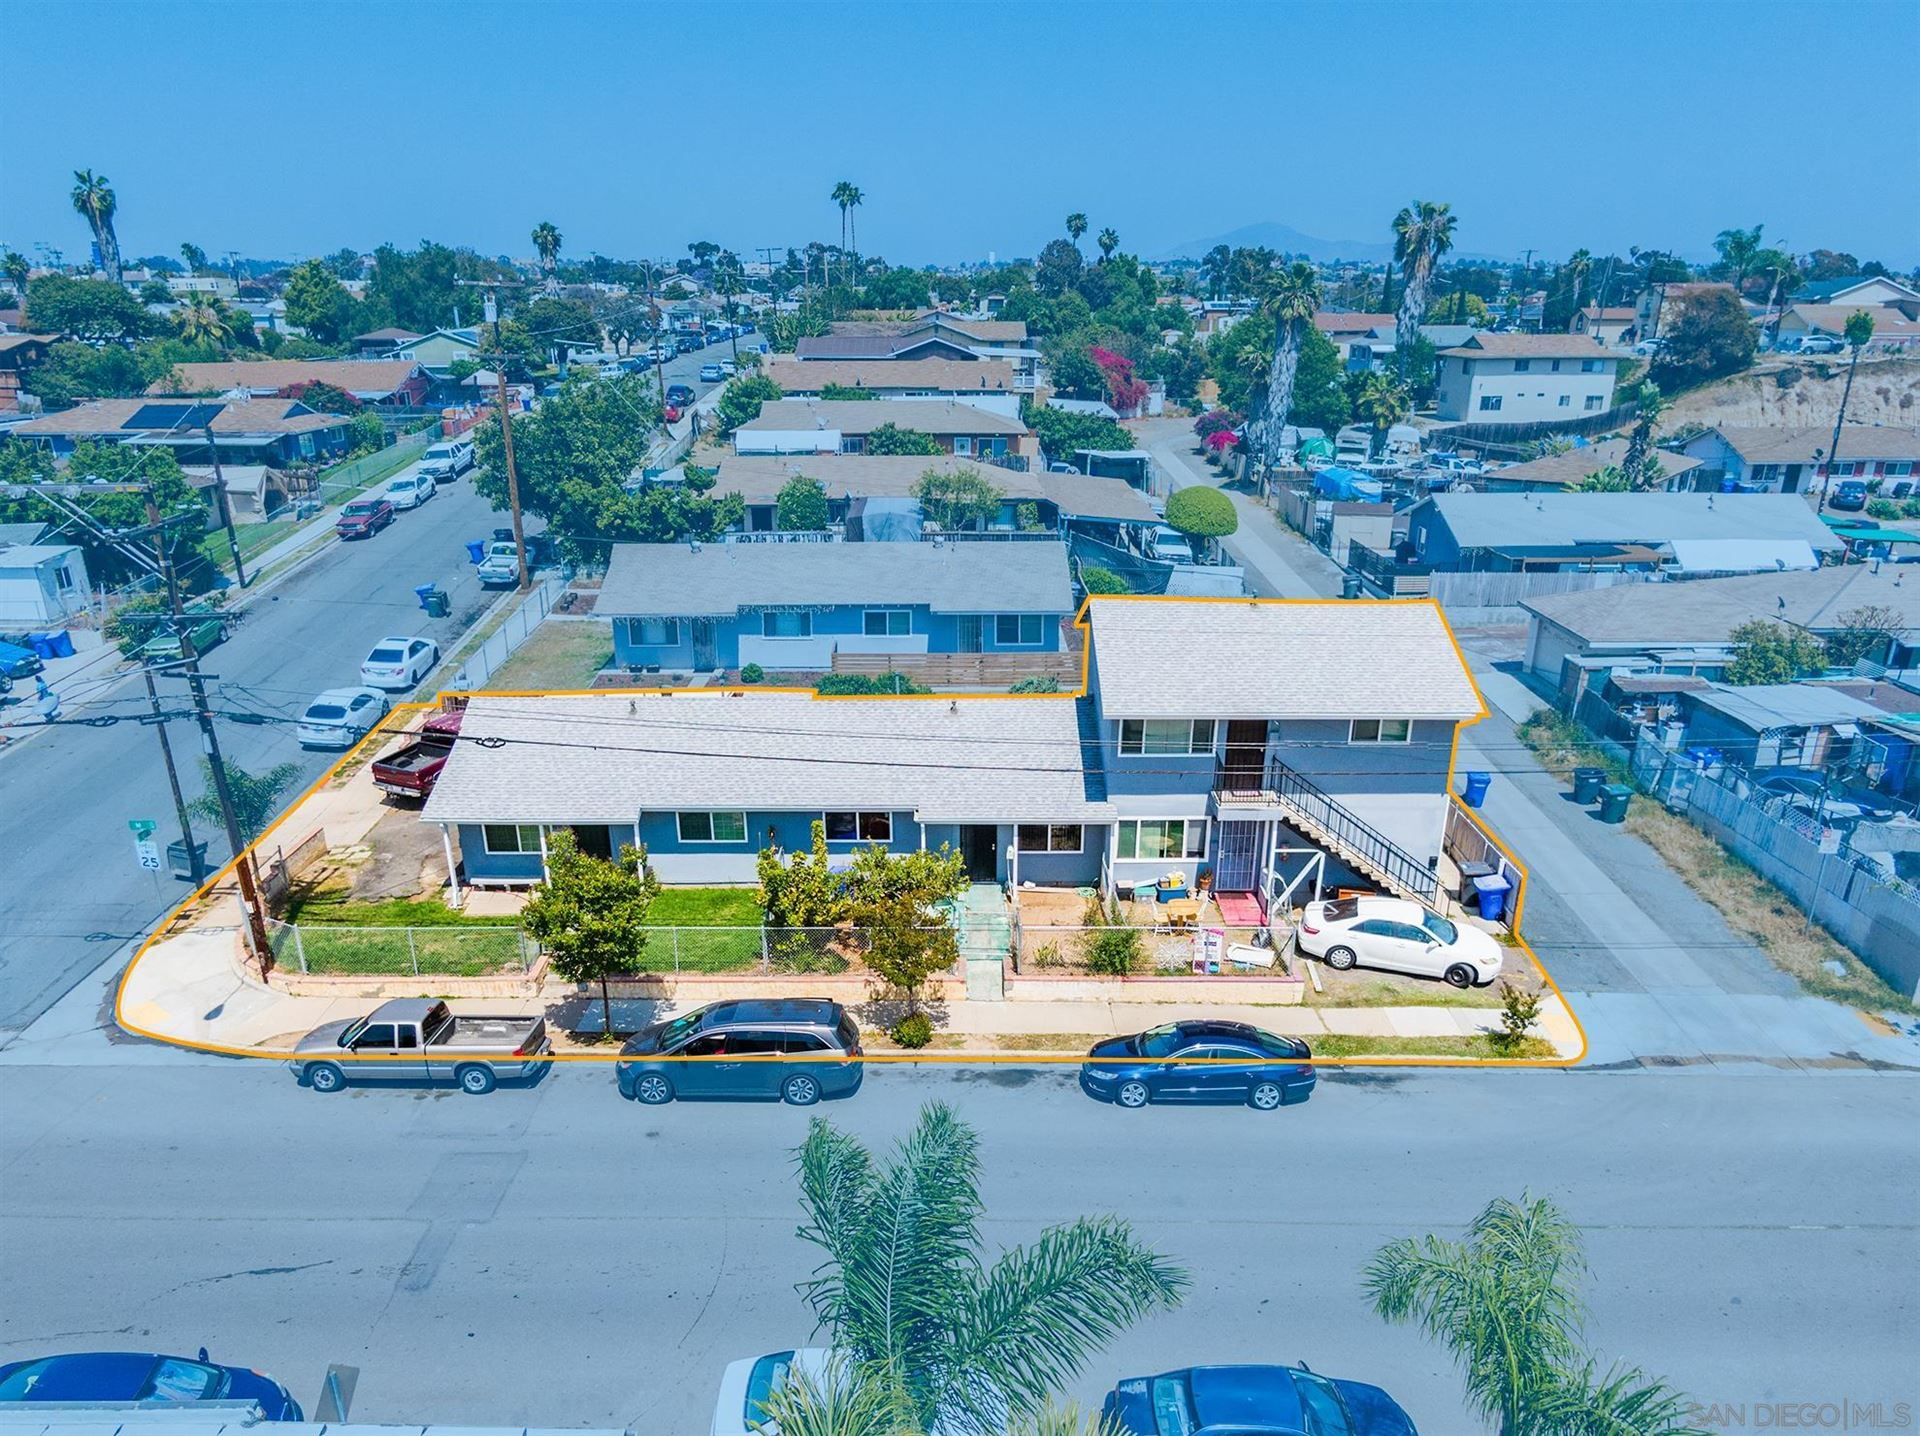 Photo of 601-5 M Ave, National City, CA 91950 (MLS # 210029583)